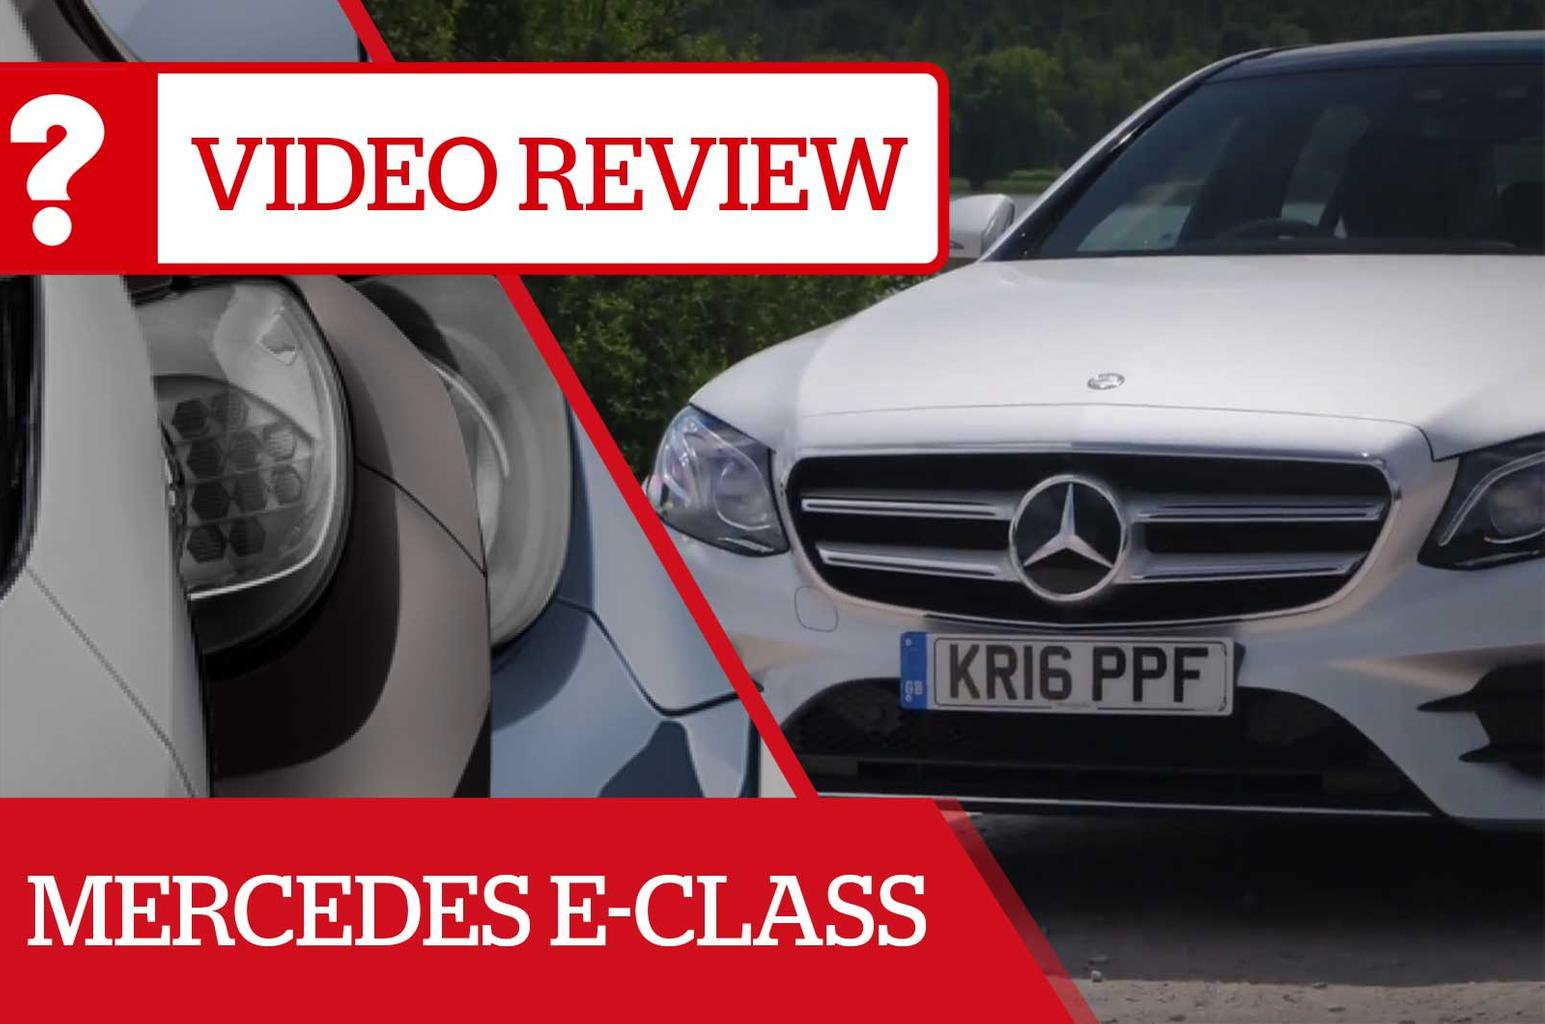 Video: Mercedes E-Class review